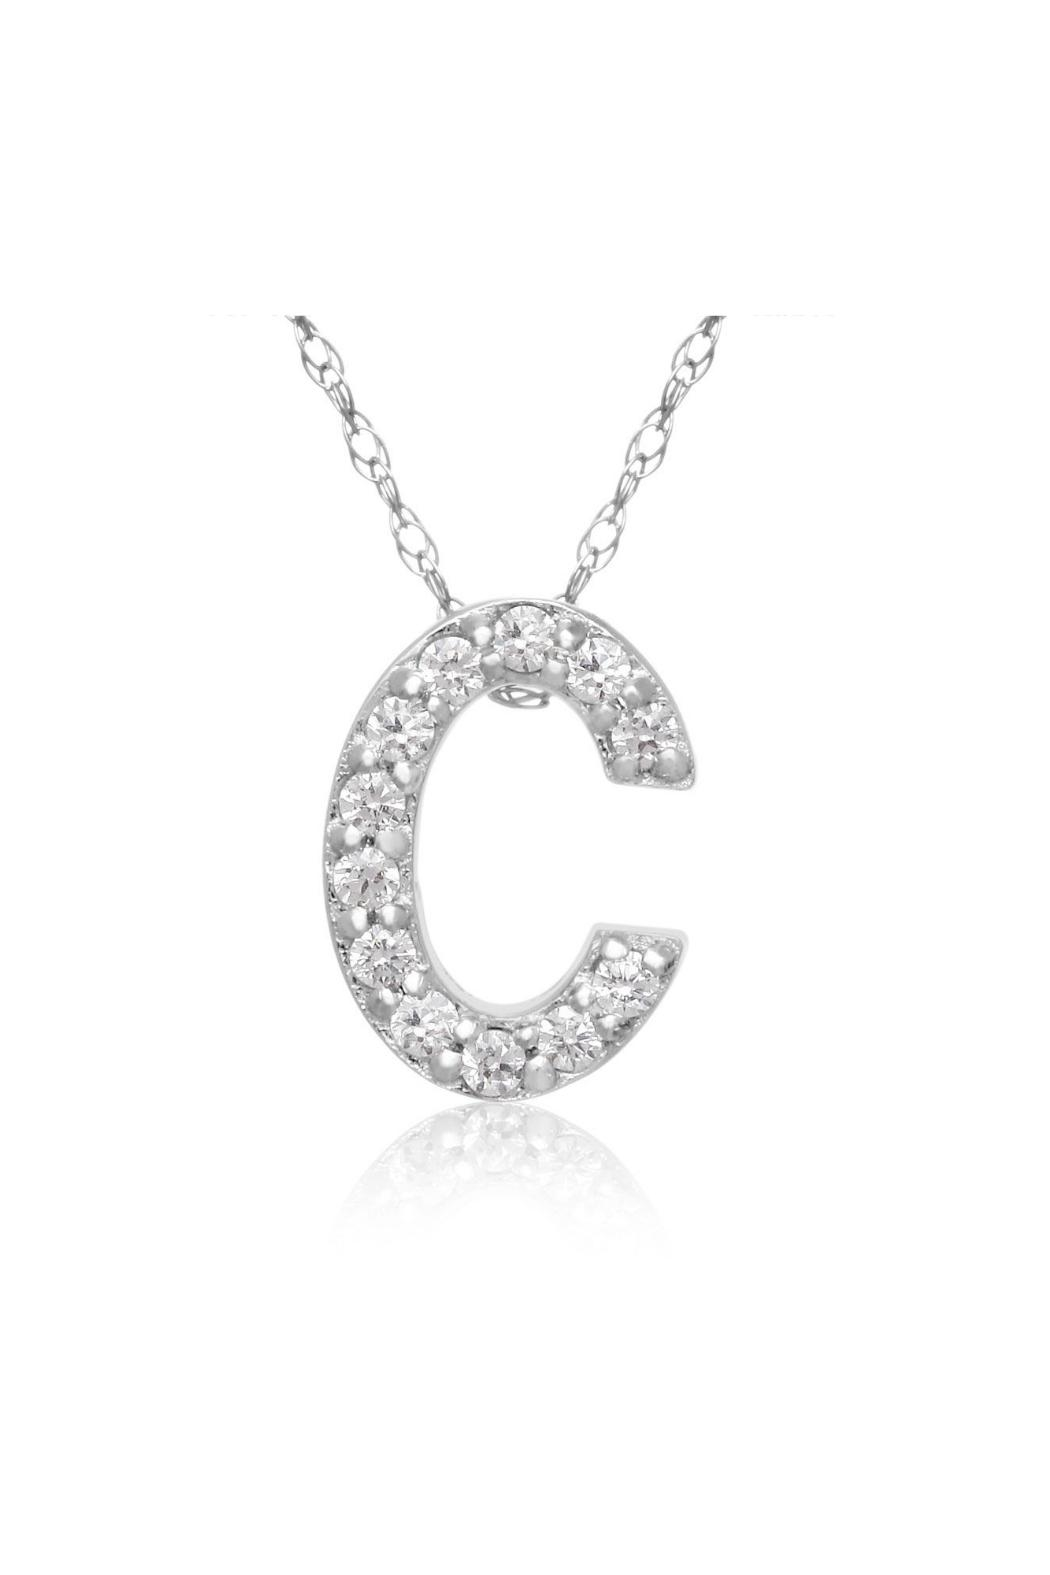 6th borough boutique diamond initial necklace from manhattan 6th borough boutique diamond initial necklace side cropped image aloadofball Gallery